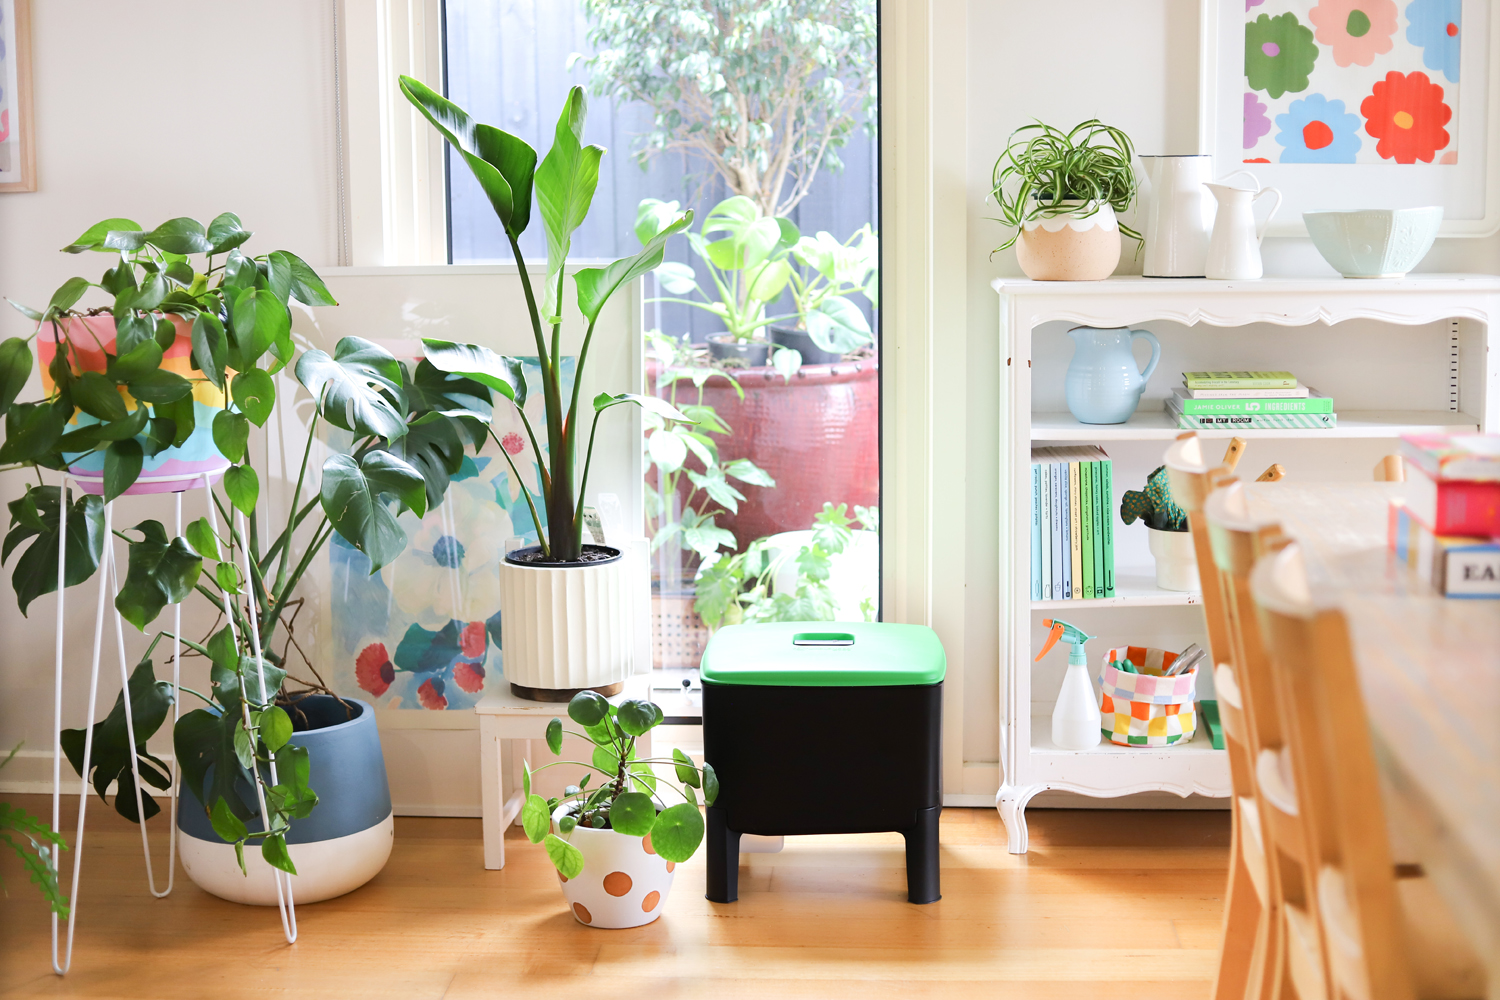 Indoor Worm Farm: Explore the possibilities with the Tumbleweed Cube